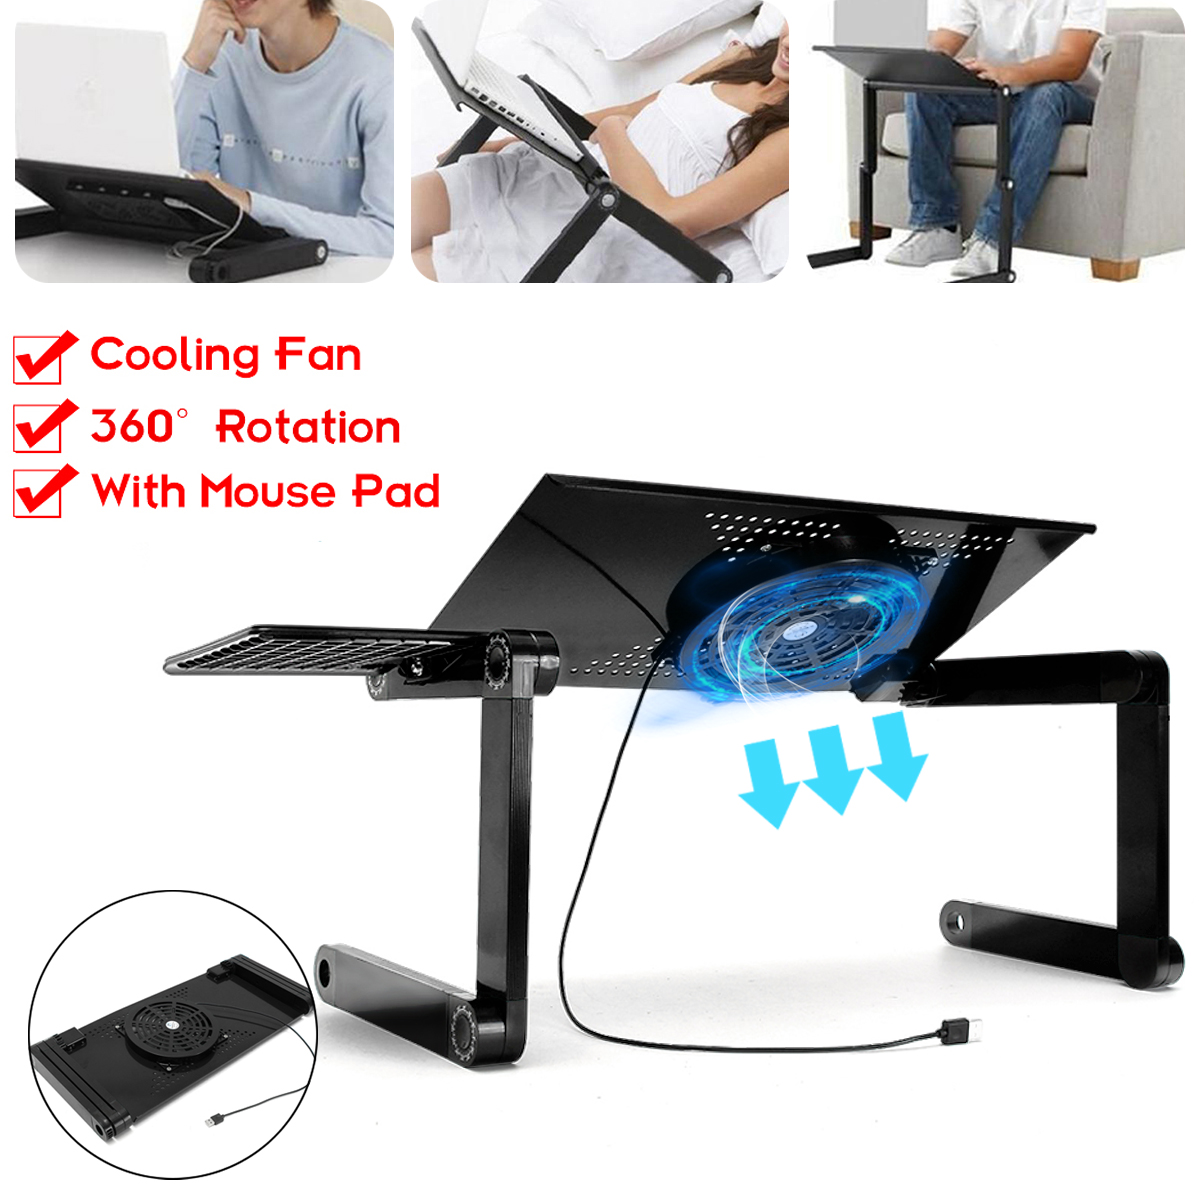 360 degree Adjustable Folding Laptop Notebook Table Stand Tray Desk with Cooling Fan Portable for Bed Carpet Car Lawn Black/Pink